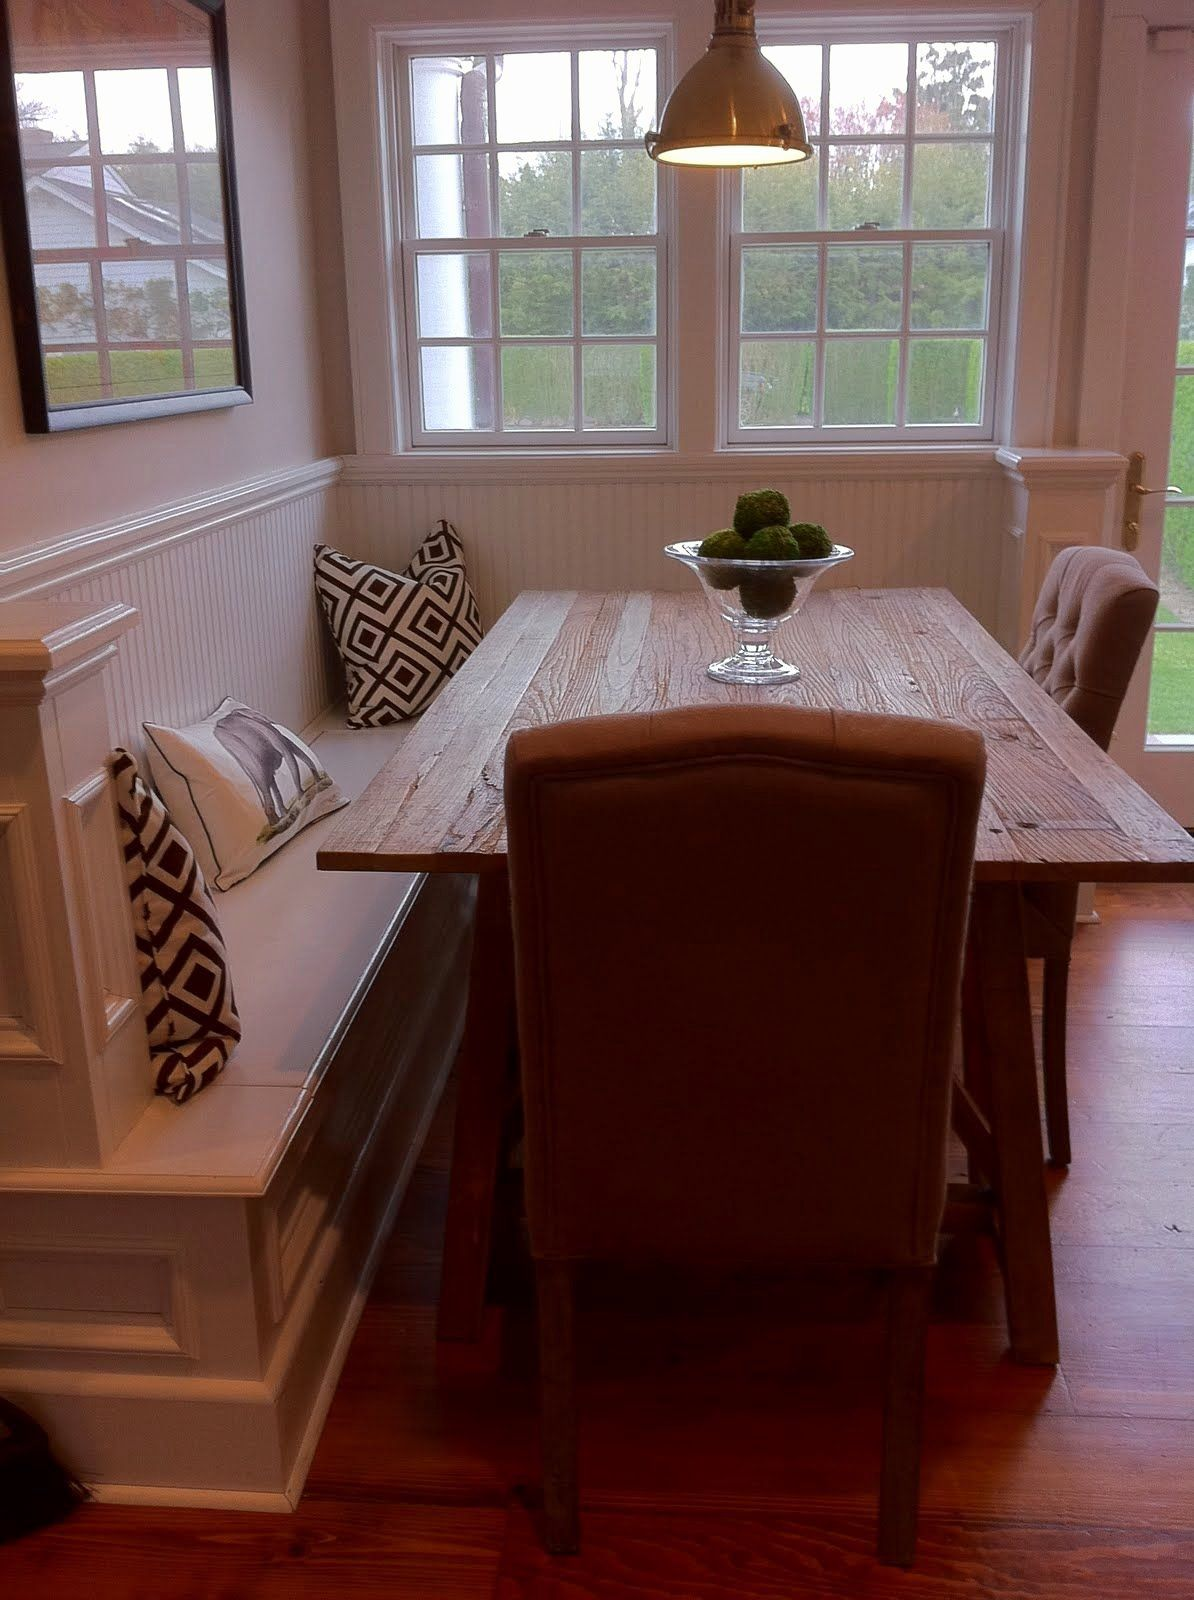 Booth Seating Dining Room Best Of Corner Bench With Dining Table This Could Be Perfect A Banquette Seating In Kitchen Bench Seating Kitchen Kitchen Table Bench